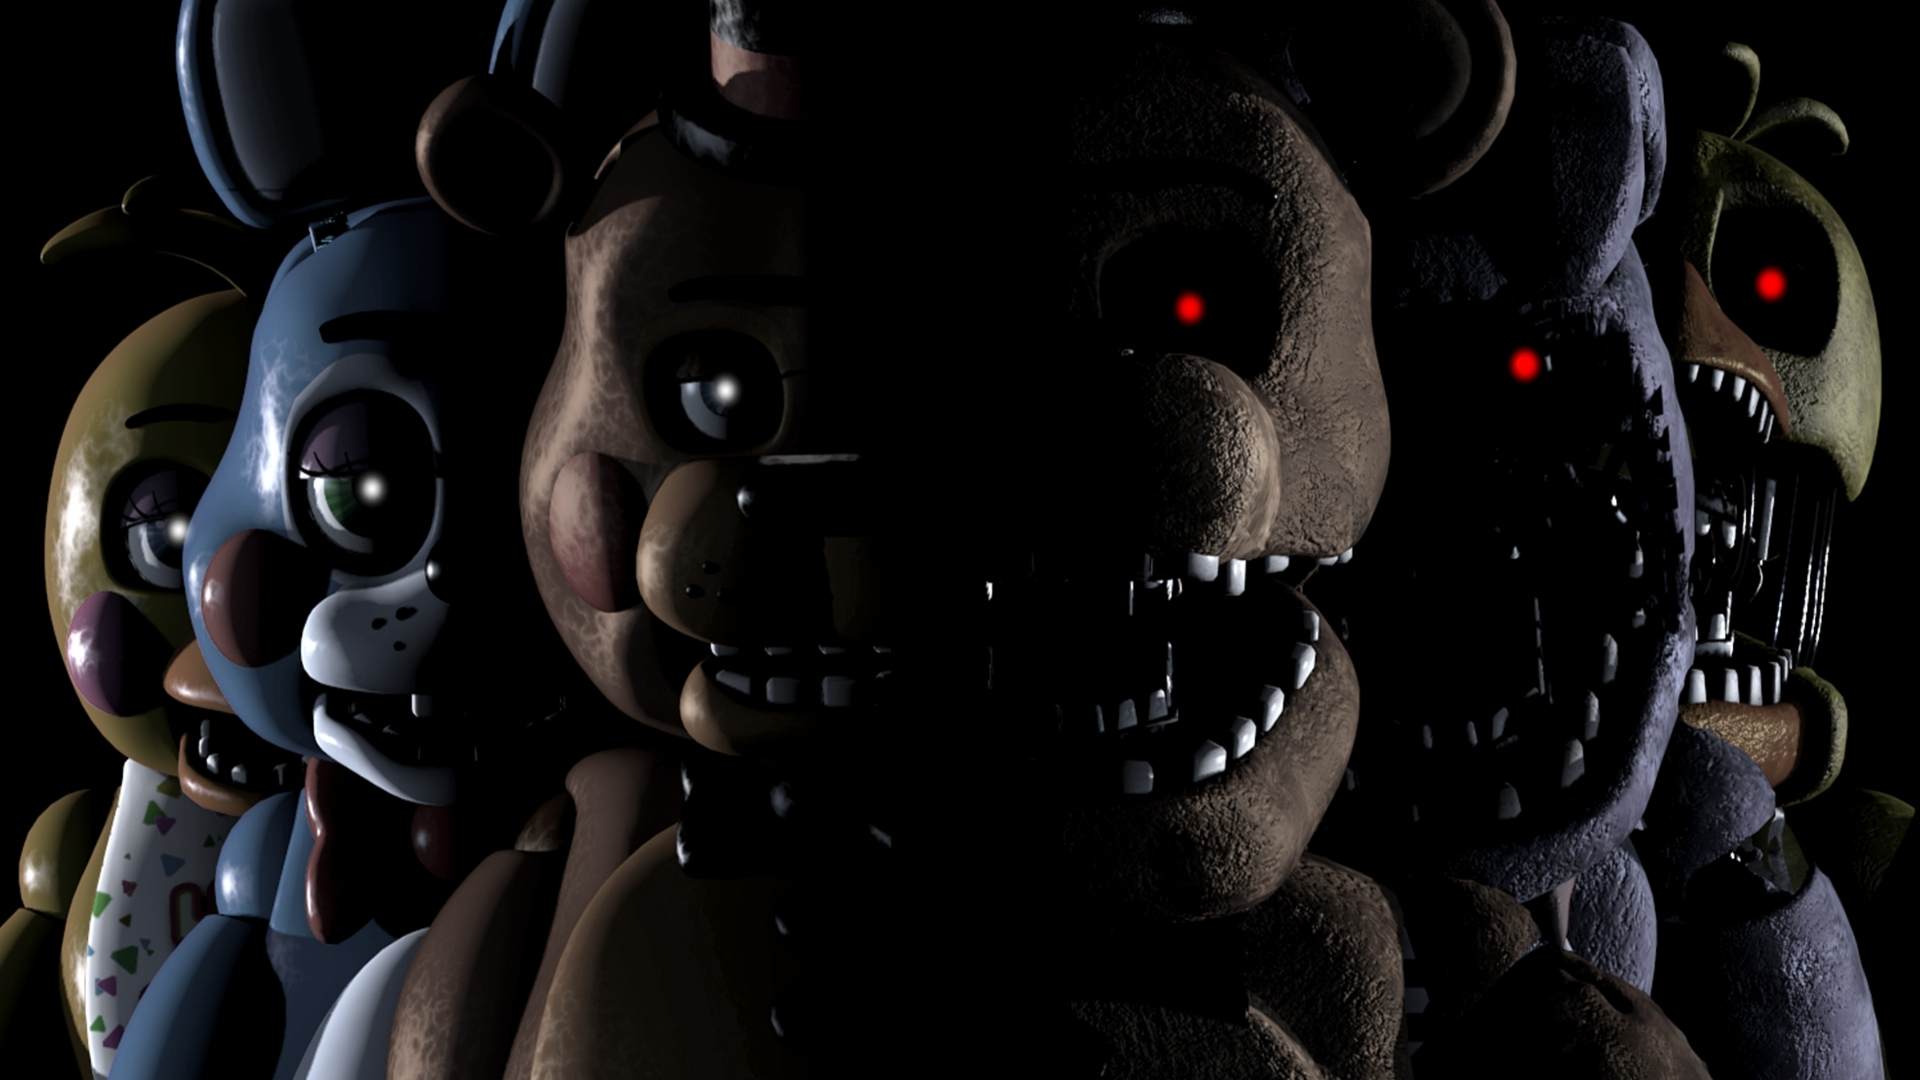 five nights at freddy's wallpapers - album on imgur